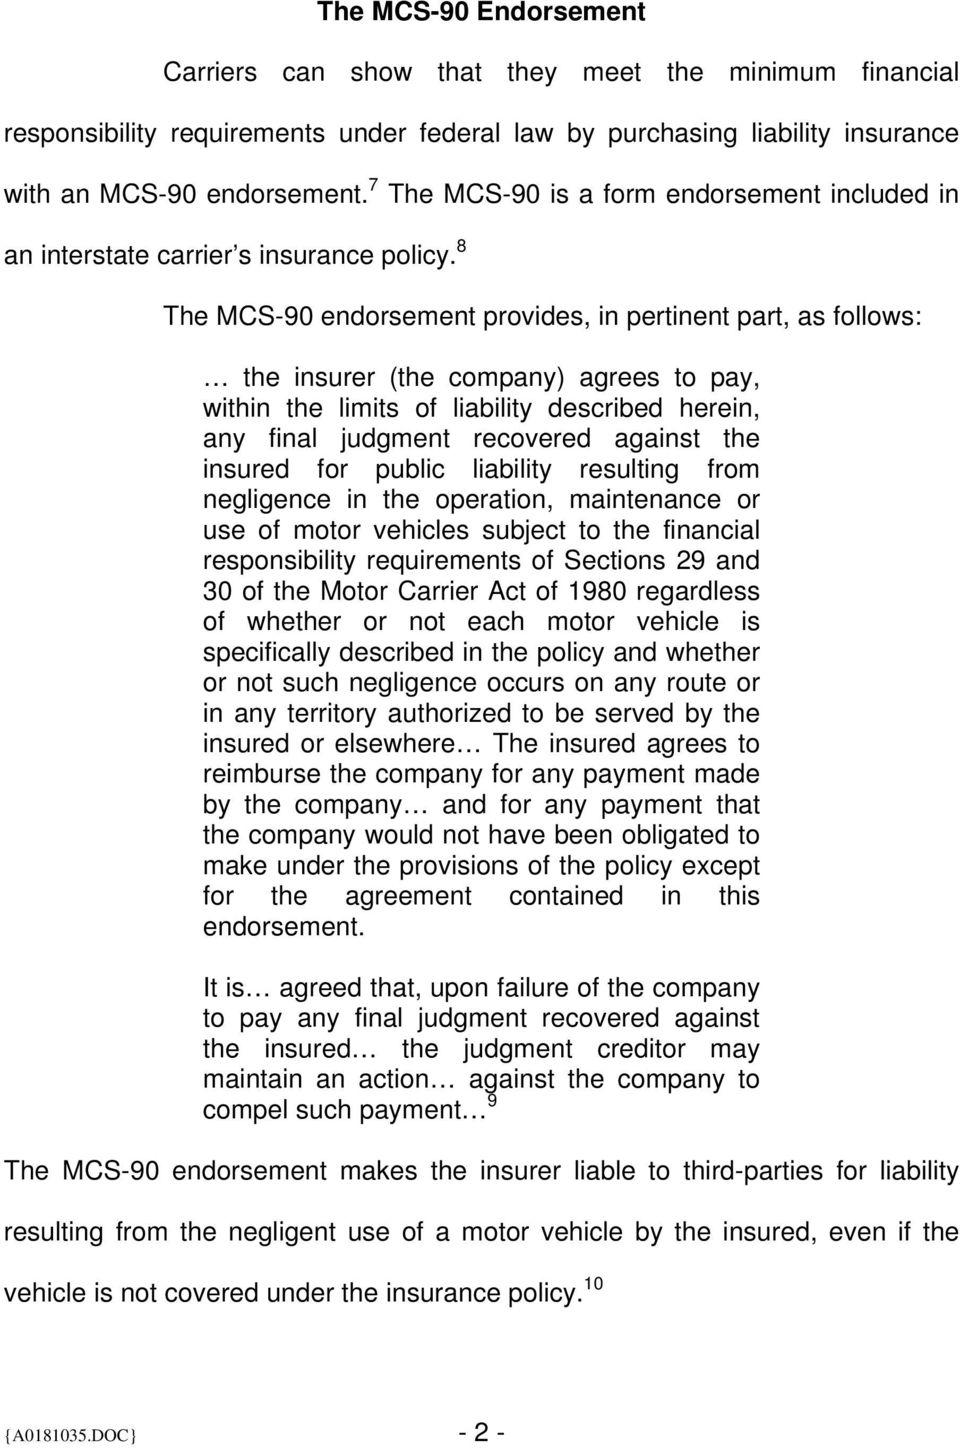 8 The MCS-90 endorsement provides, in pertinent part, as follows: the insurer (the company) agrees to pay, within the limits of liability described herein, any final judgment recovered against the